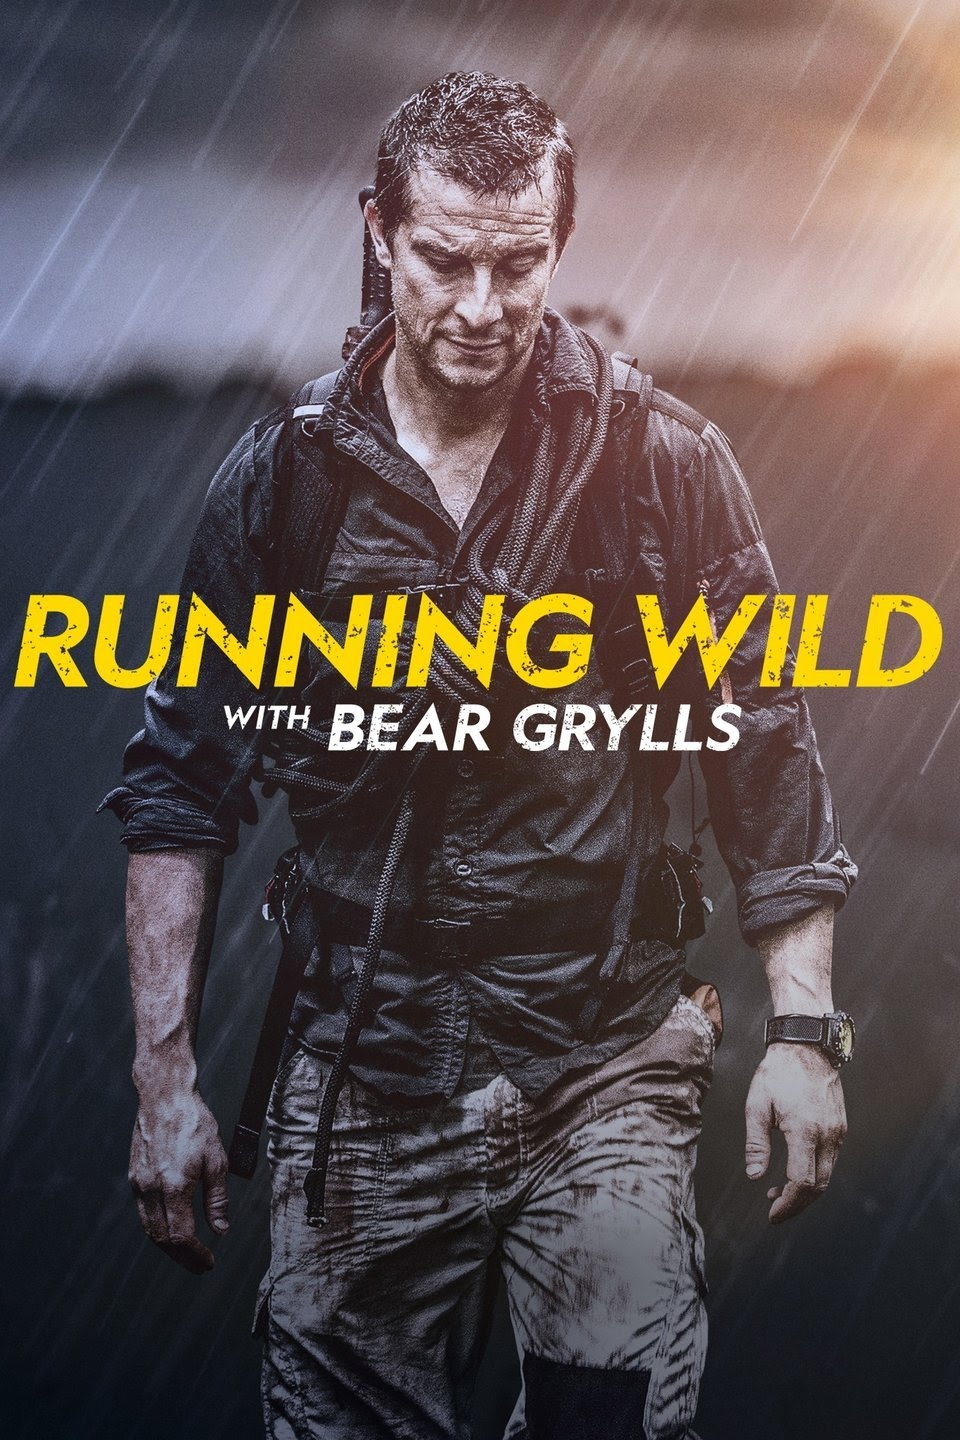 Running Wild With Bear Grylls Season 1 1080p DSCV+ WEB-DL x264 (AAC 2.0 – 192Kbps) [Telugu + Tamil + Marathi + Malayalam + Kannada + Hindi + English + Bengali] ~ TheDNK